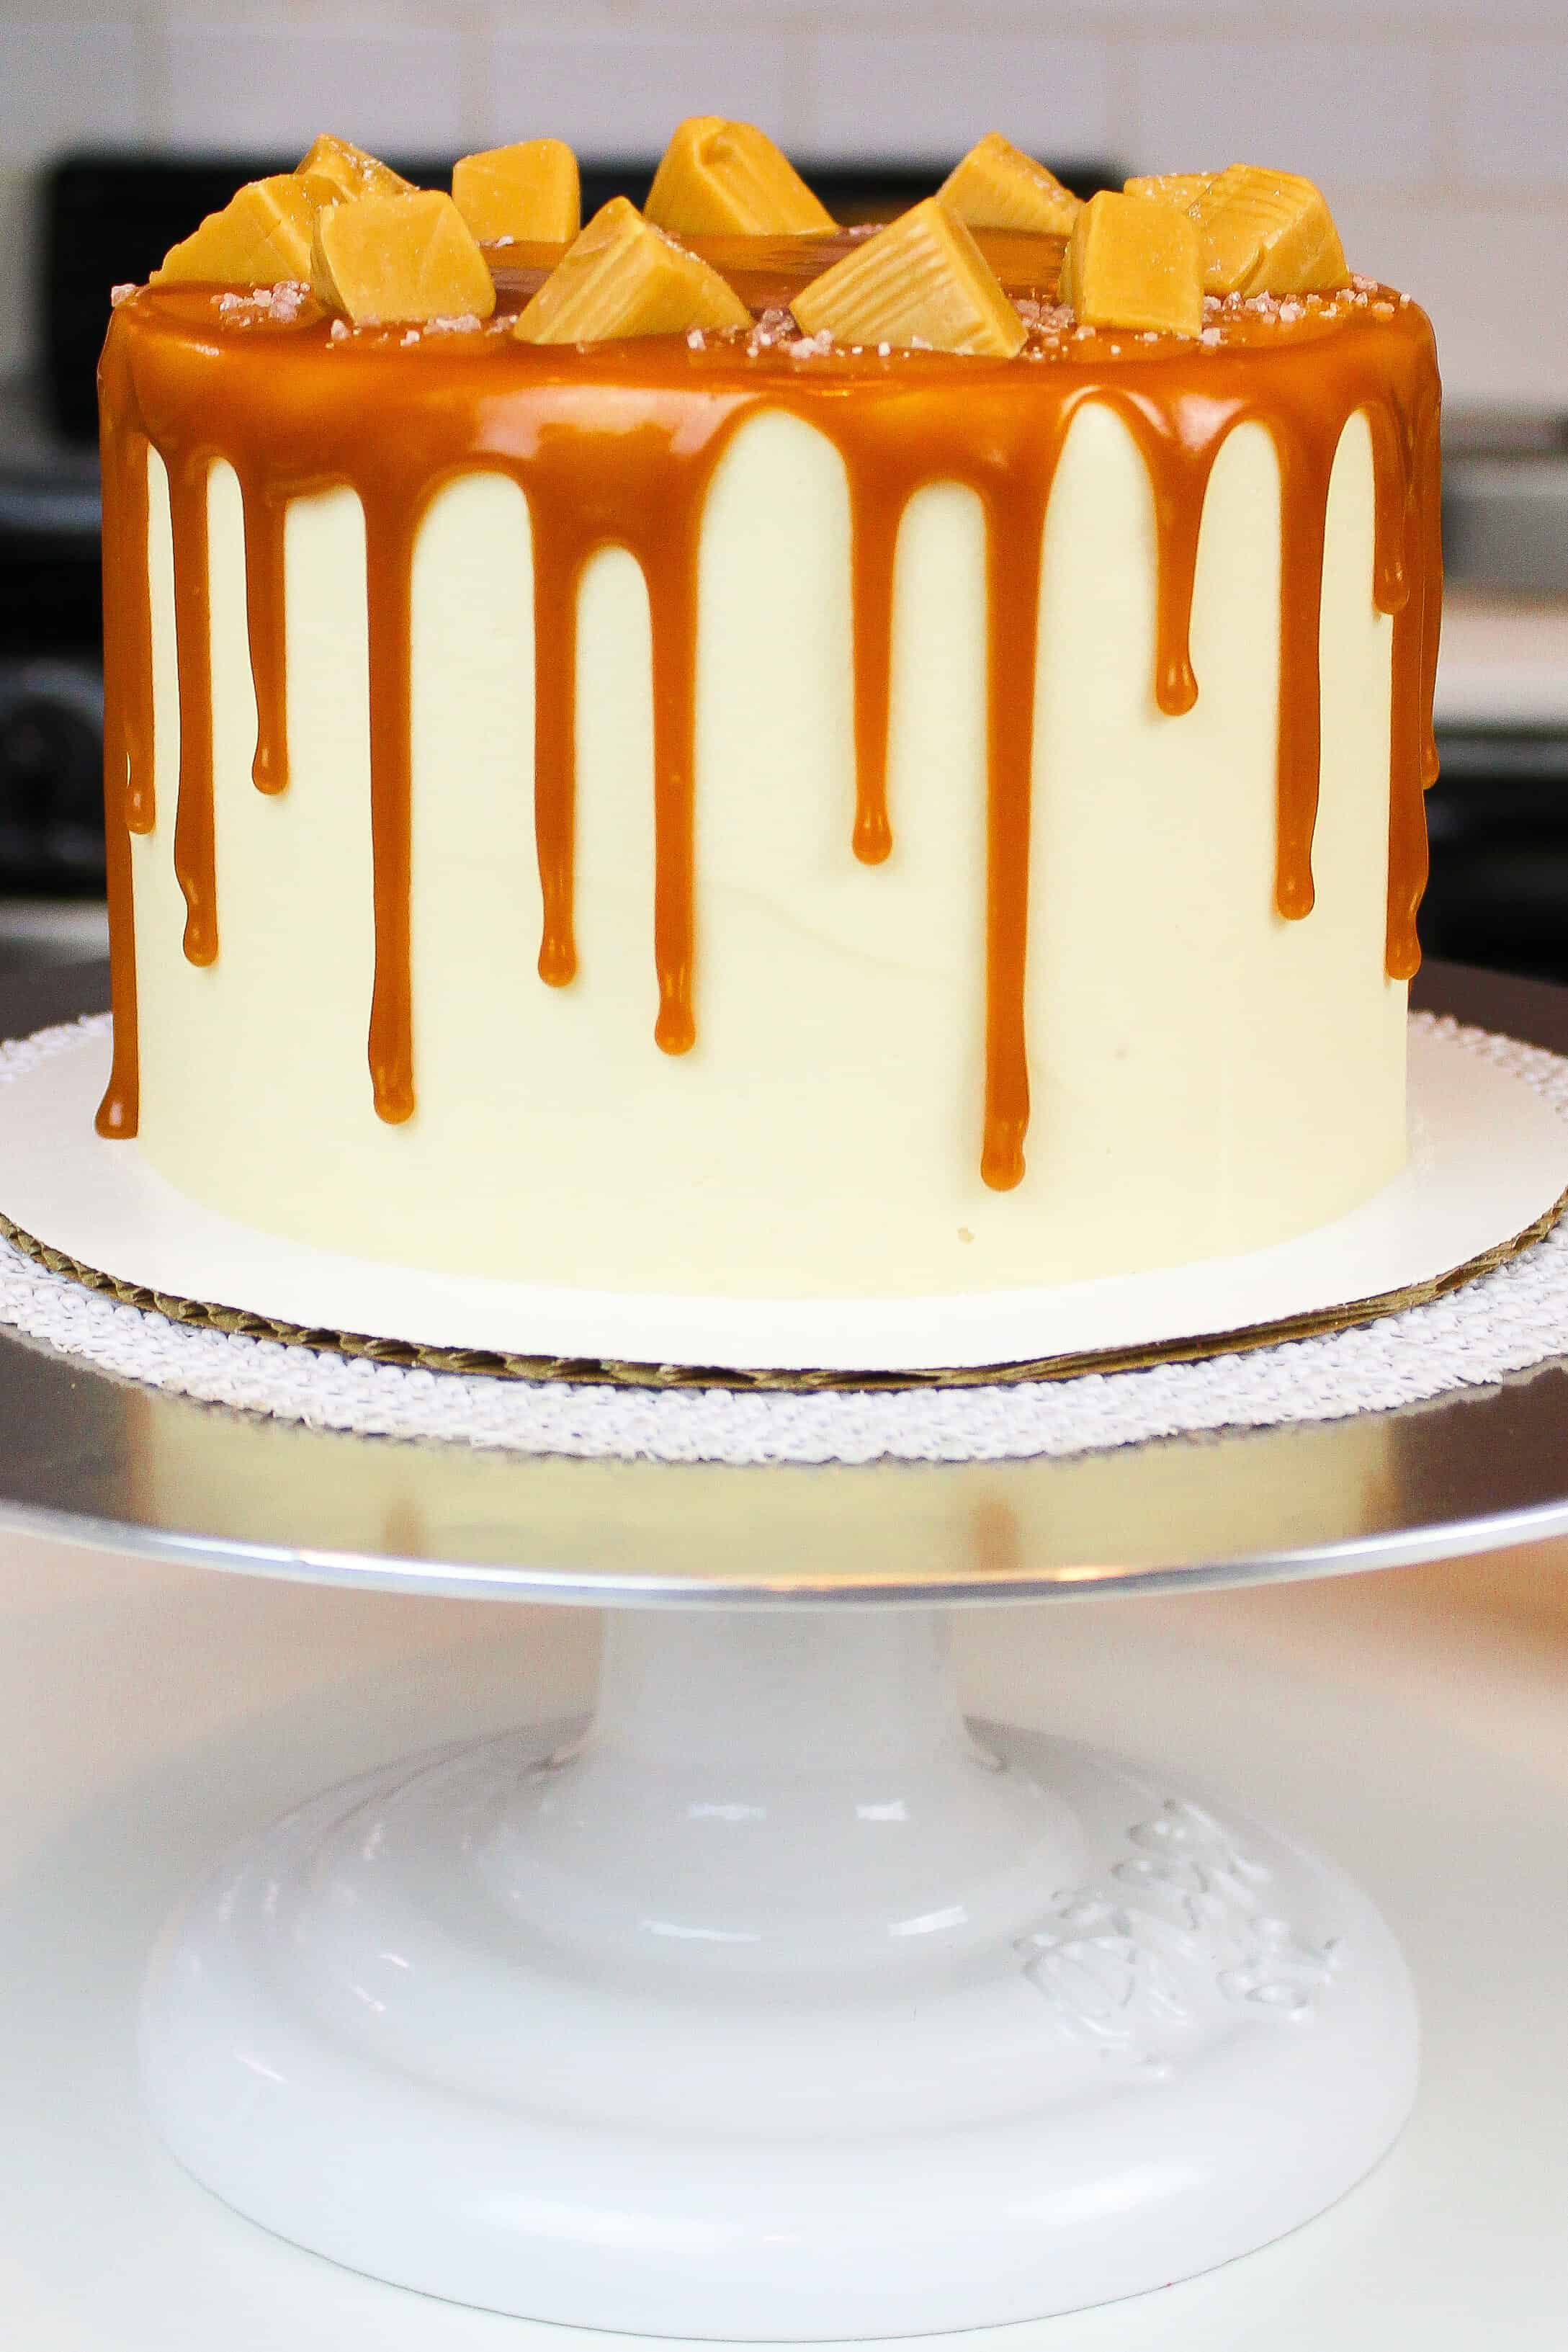 salted caramel drip cake photo